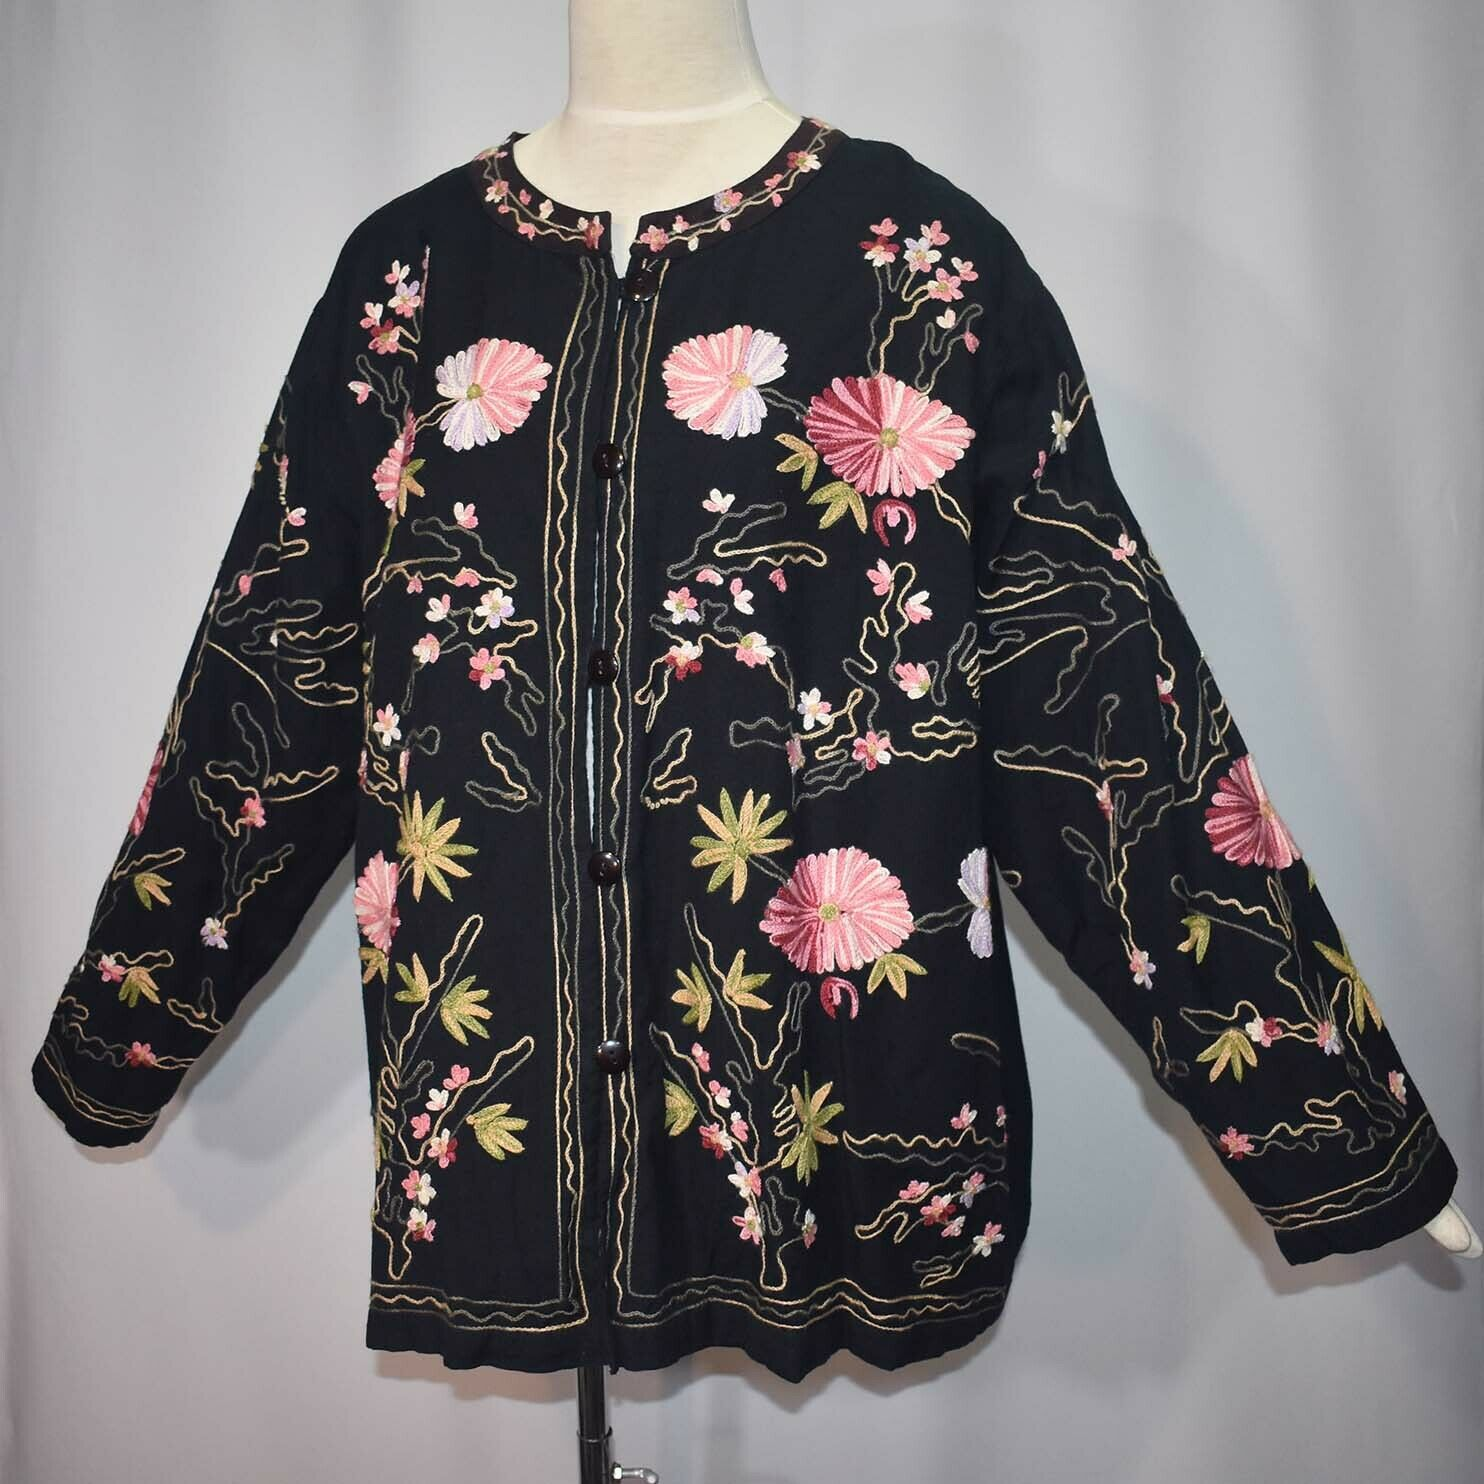 Floral Embroidered Cotton Blend Button Front Cardigan Jacket 3X 3XW Bedford Fair